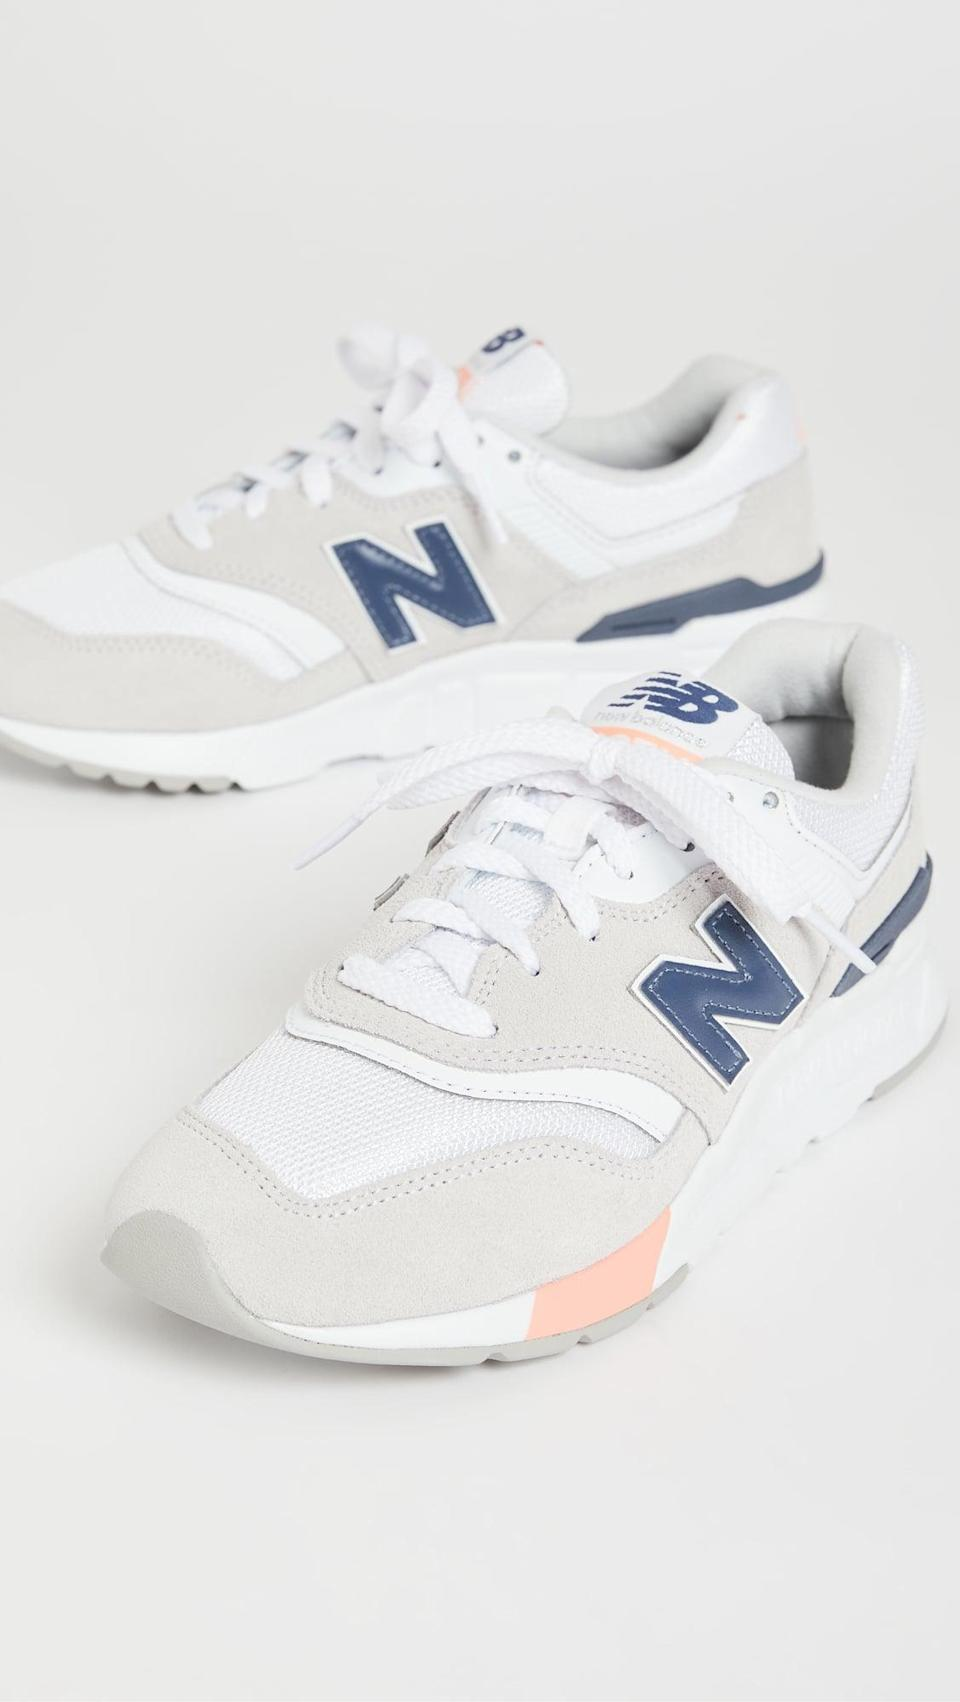 """<p><span>New Balance 997 Classic Sneakers</span> ($90)</p> <p>""""I have a new found love for New Balance sneakers and my pair from last year is totally worn out, so now I have my eye on the 997 sneakers. The cute pink and navy details makes them feel different and fresh. They're perfect to wear with jeans and tee and I know they'll always look cool."""" - Krista Jones, associate editor, Shop</p>"""